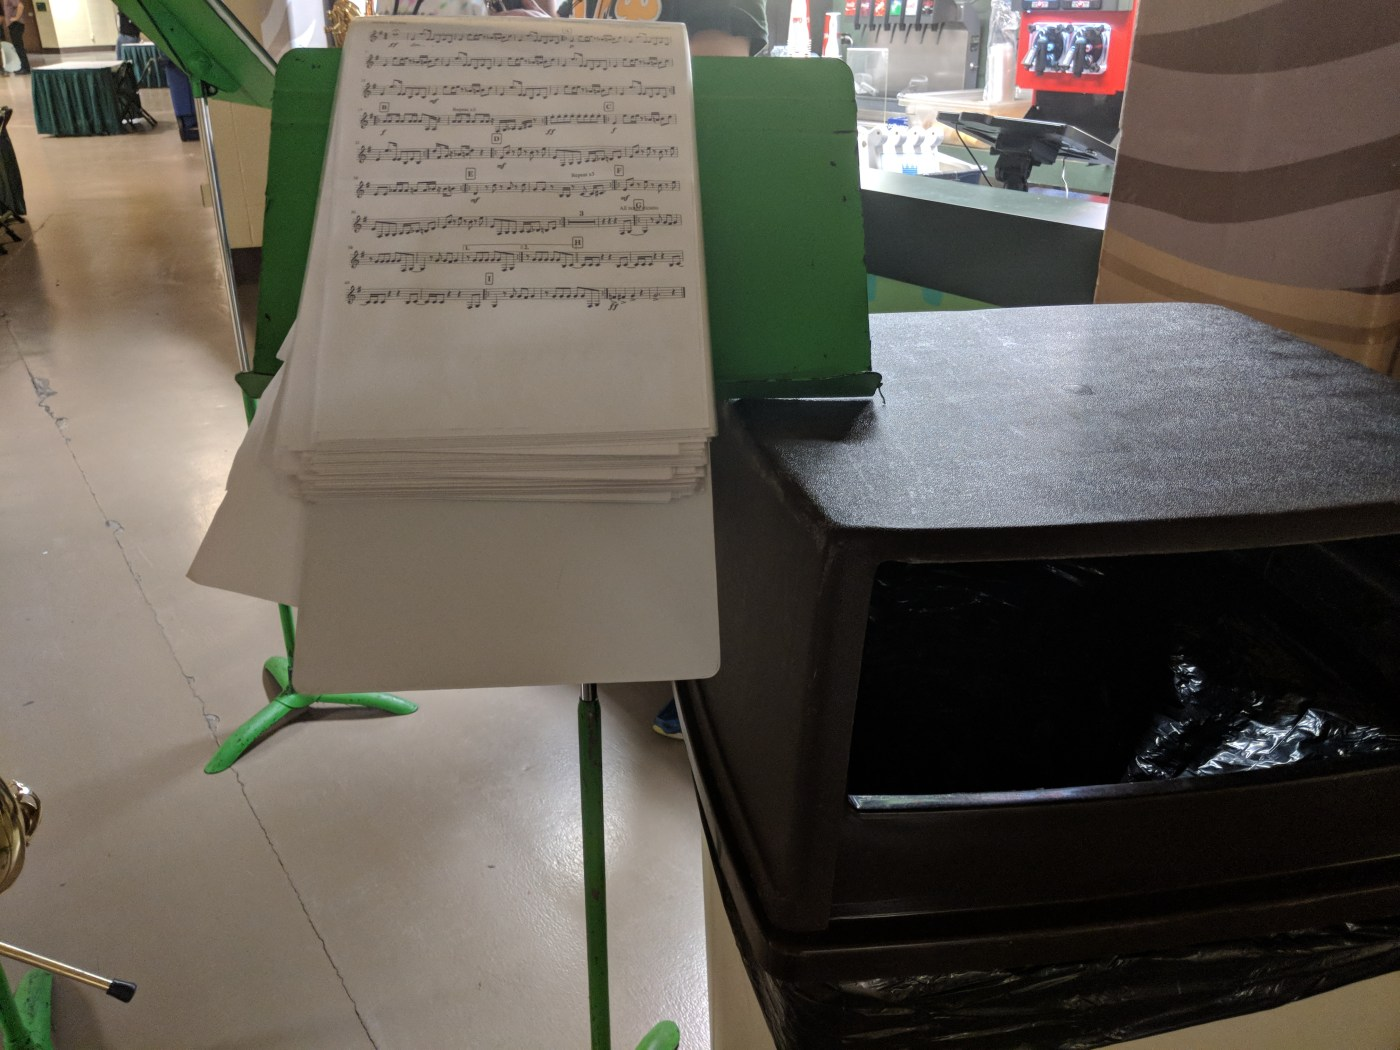 a binder dangling over a music stand that is supported by a trash can